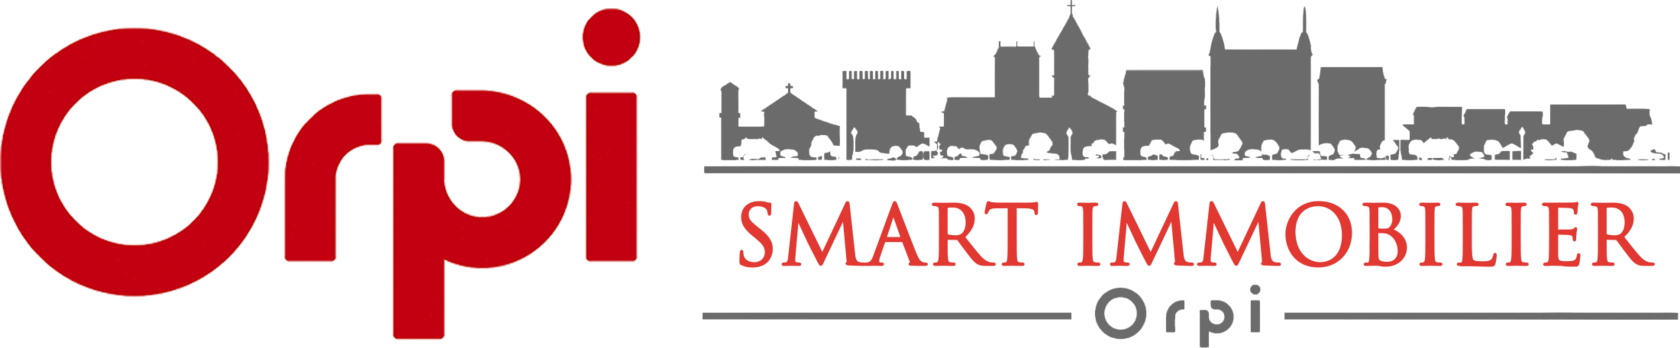 ORPI SMART Immobilier